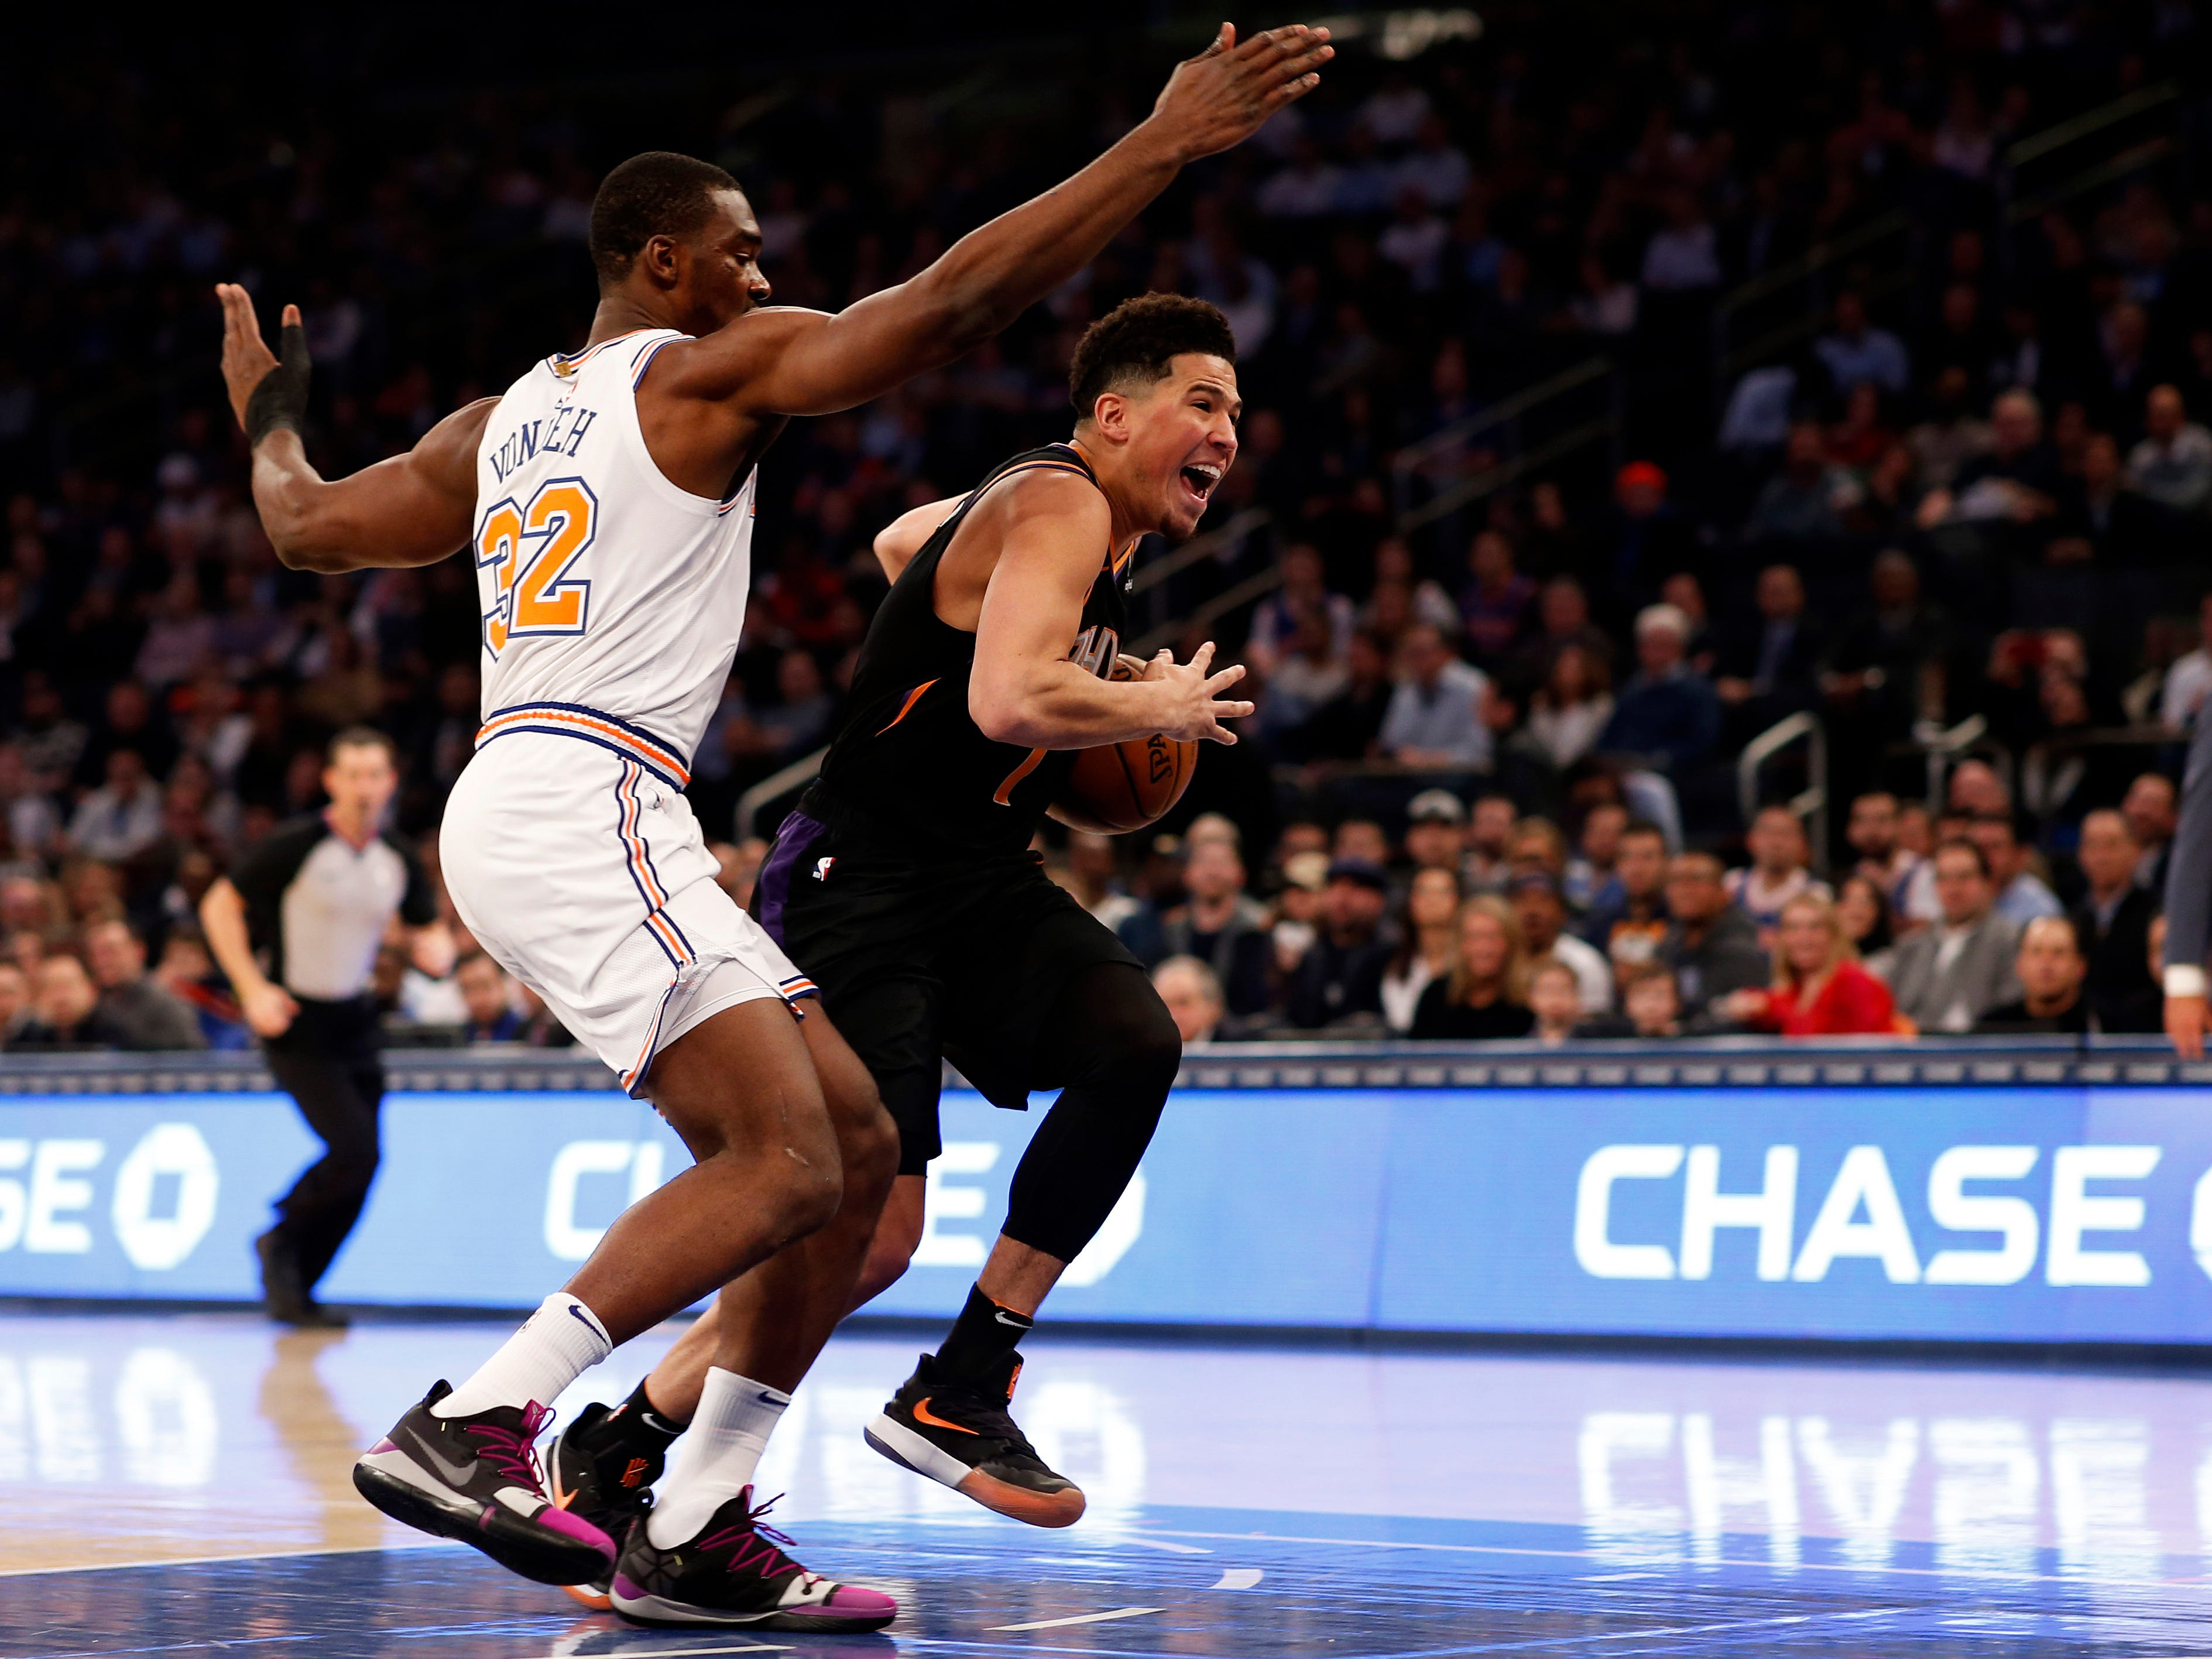 Dec 17, 2018; New York, NY, USA; Phoenix Suns guard Devin Booker (1) drives to the basket past New York Knicks forward Noah Vonleh (32) during the first half at Madison Square Garden. Mandatory Credit: Adam Hunger-USA TODAY Sports